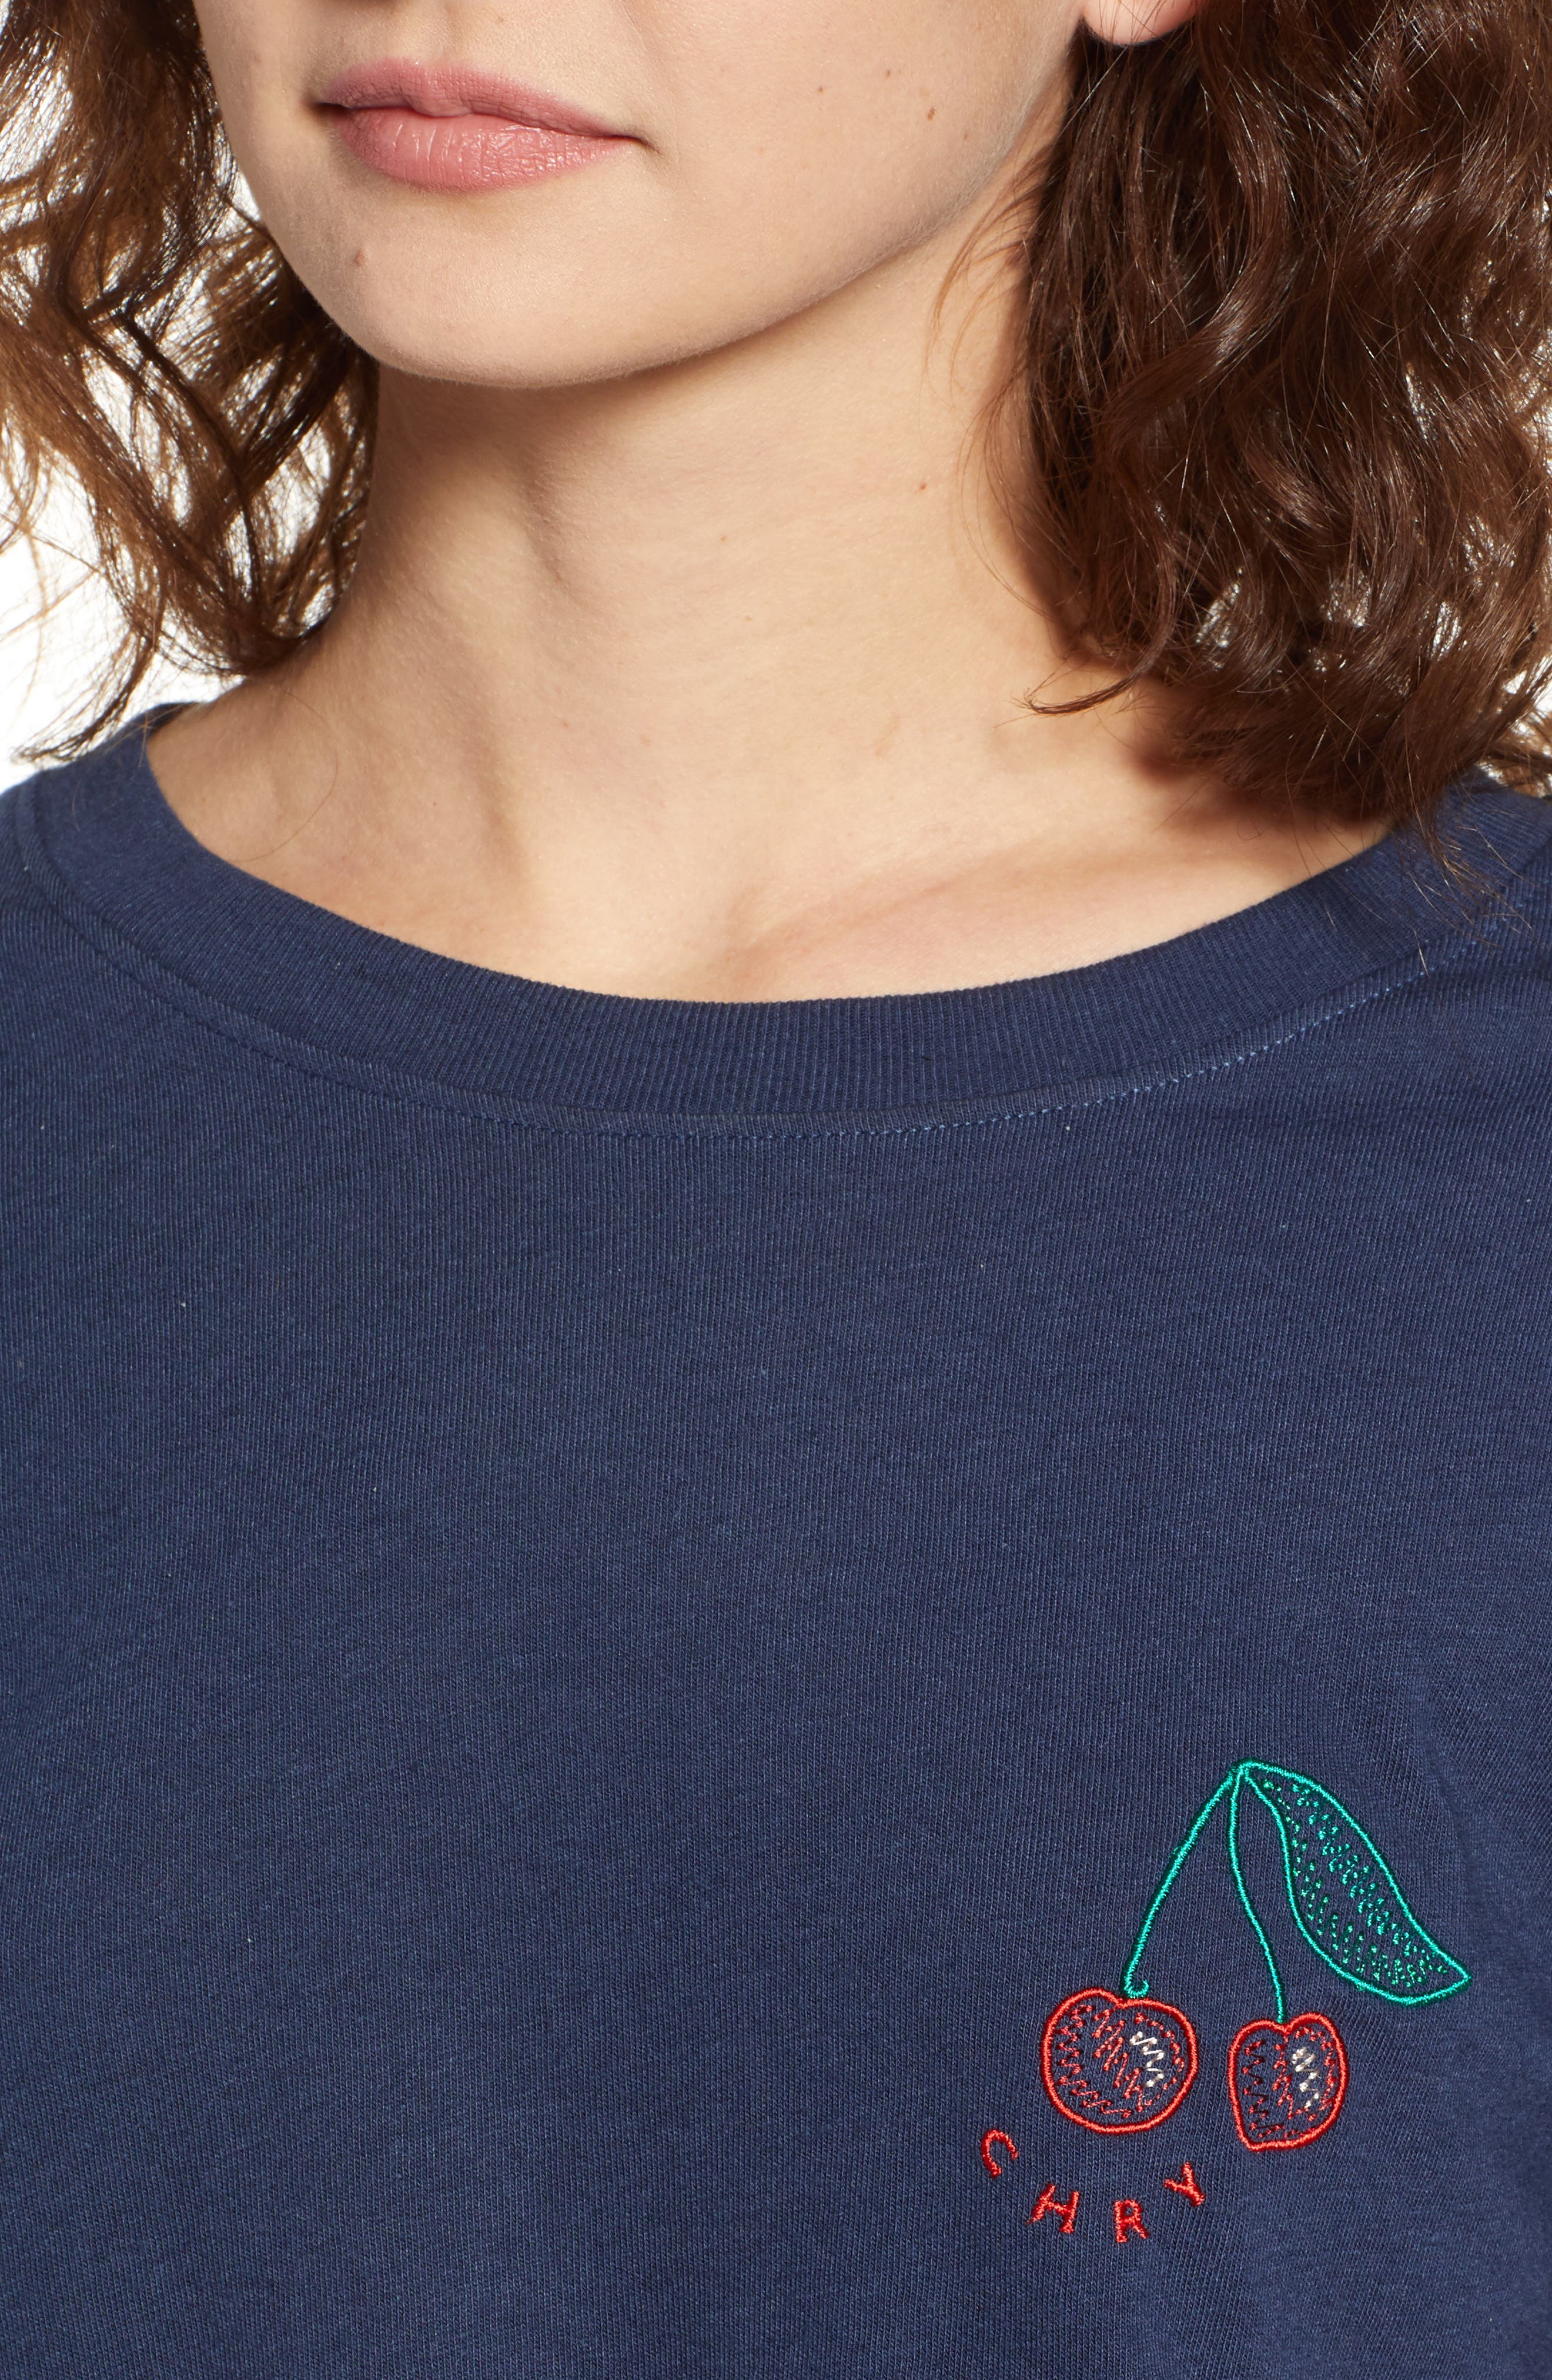 Cherry Slouched Tee,                             Alternate thumbnail 4, color,                             410